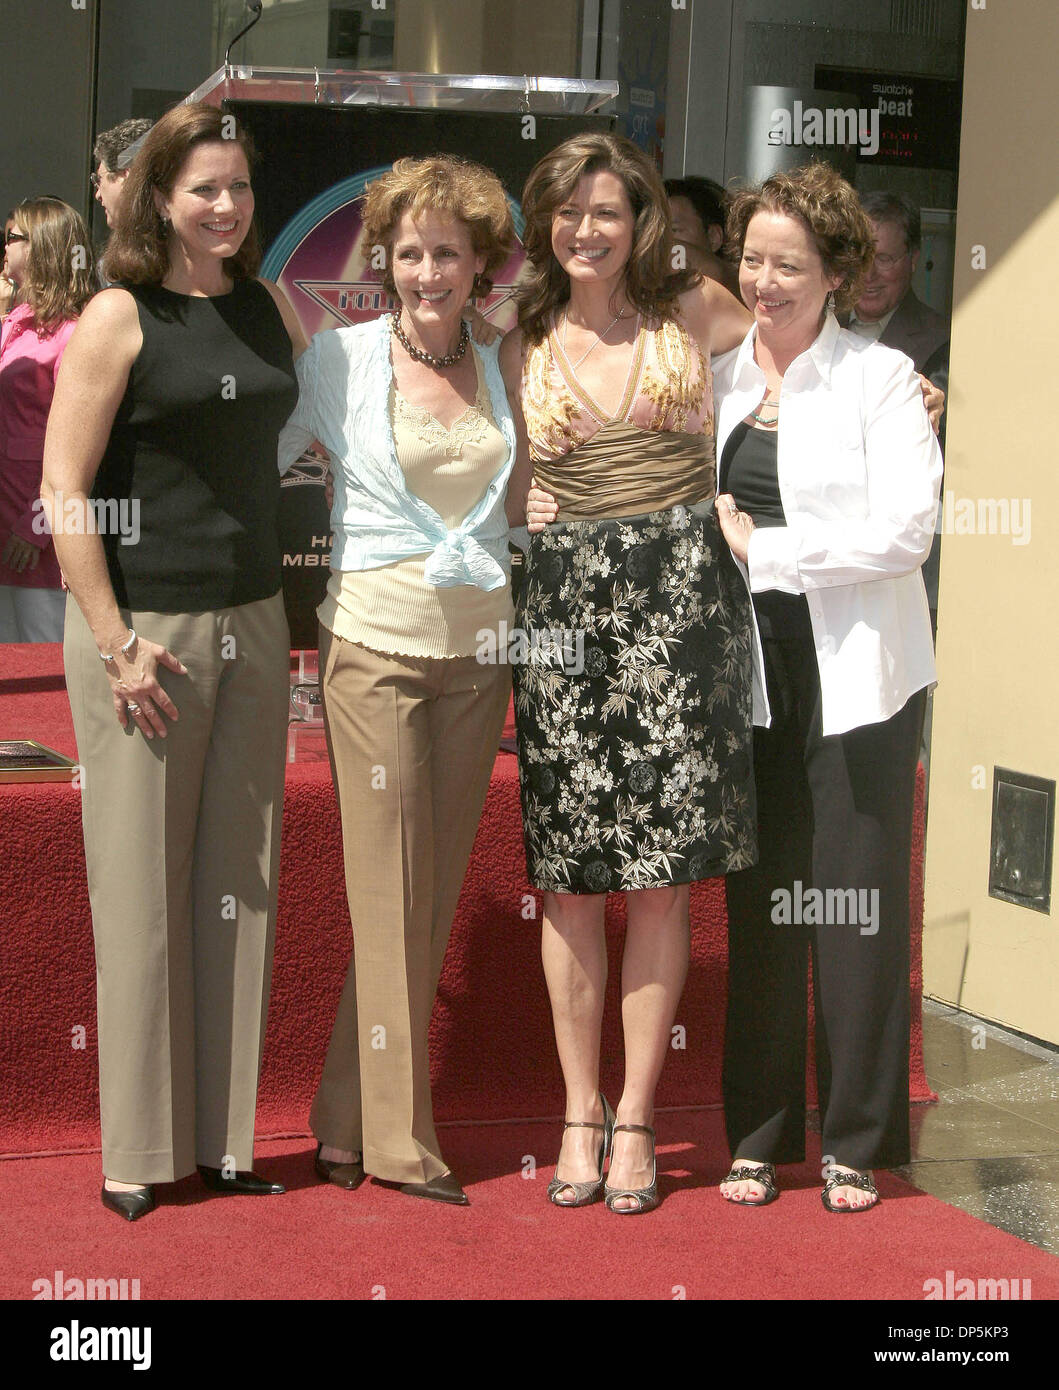 Sep 19, 2006; Hollywood, CA, USA; Singer AMY GRANT is honored with the 2,318th Star on Hollywood Walk of Fame. Accompanied by her husband VINCE GILL, parents BURT and GLORIA, her sisters CAROL, KATHY, MIMI. Mandatory Credit: Photo by Paul Fenton/ZUMA Press. (©) Copyright 2006 by Paul Fenton - Stock Image